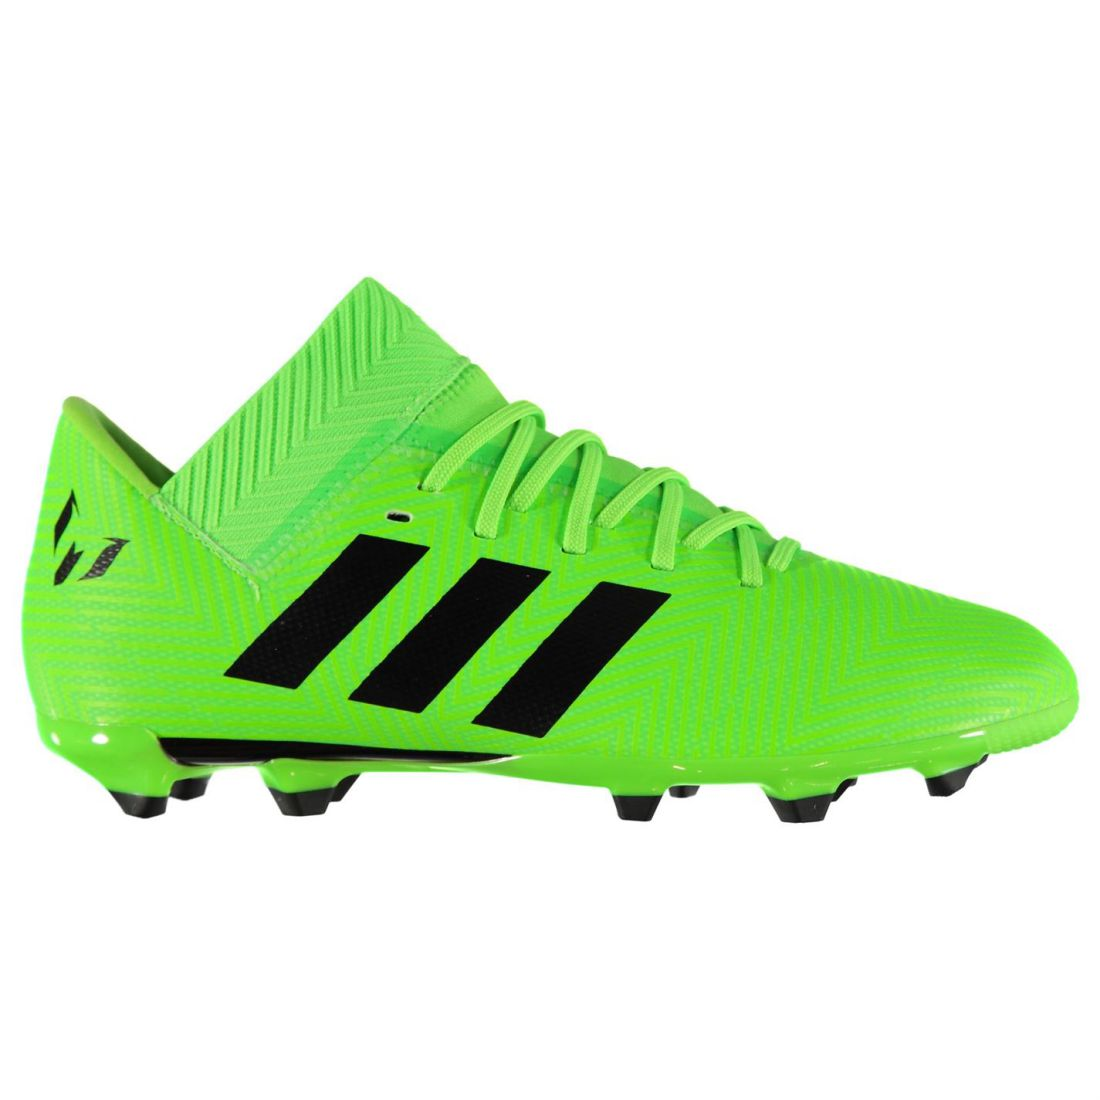 431856c16 adidas Nemeziz Messi 18.3 Youngster FG Football Boots Childrens ...